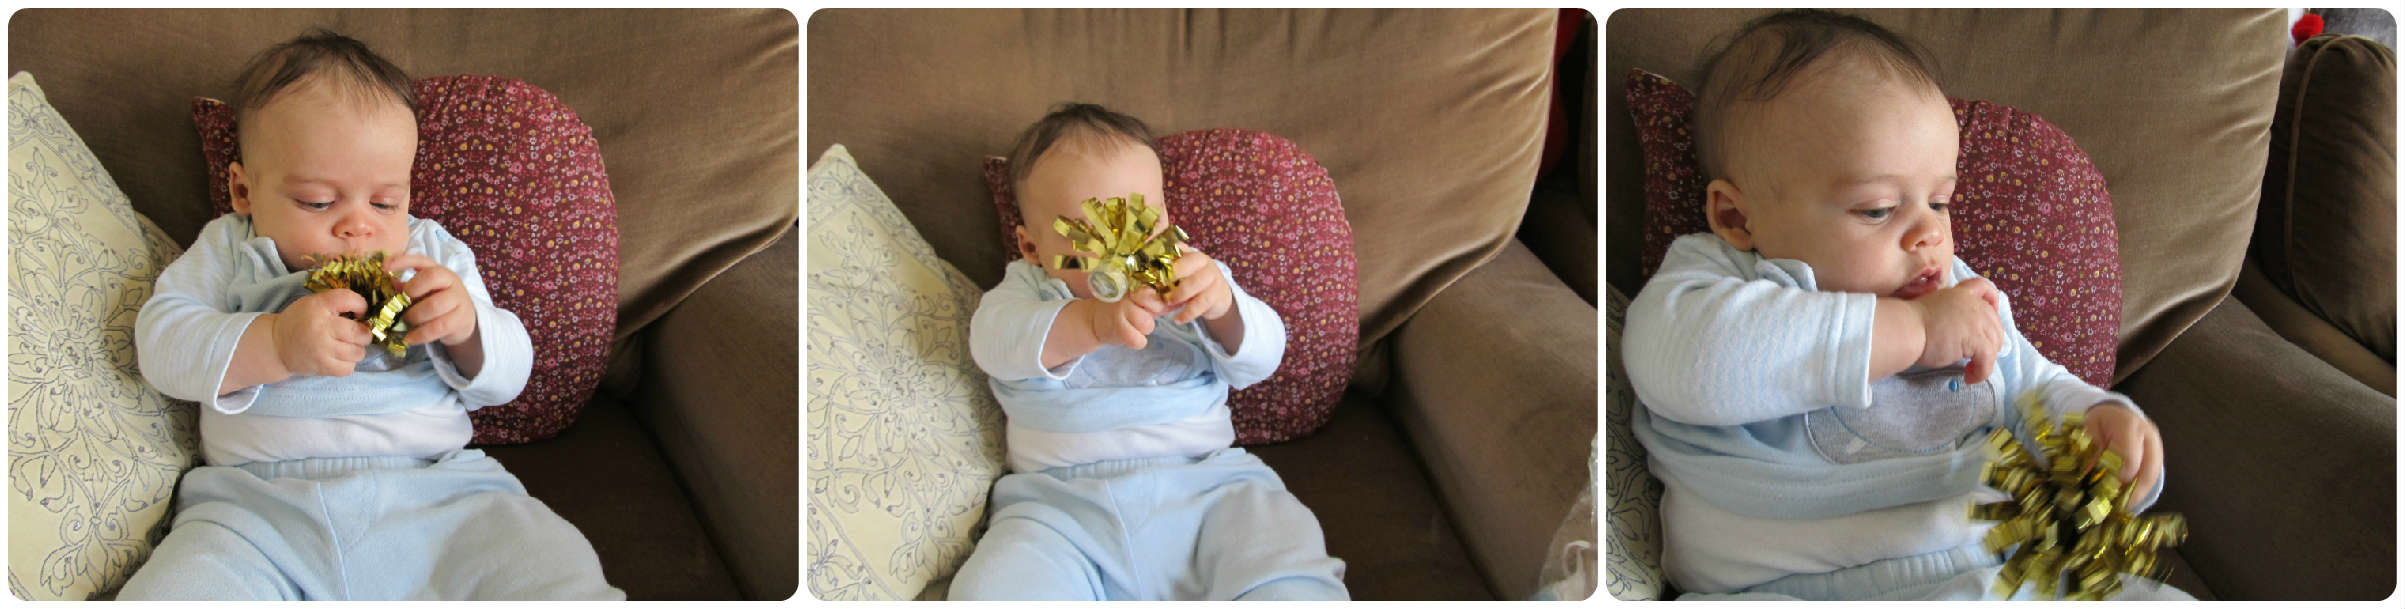 simple baby play ideas and activities: sensory play with easy to hand items. baby-brain.co.uk psychology perspective, resource, blog, motherhood and babies